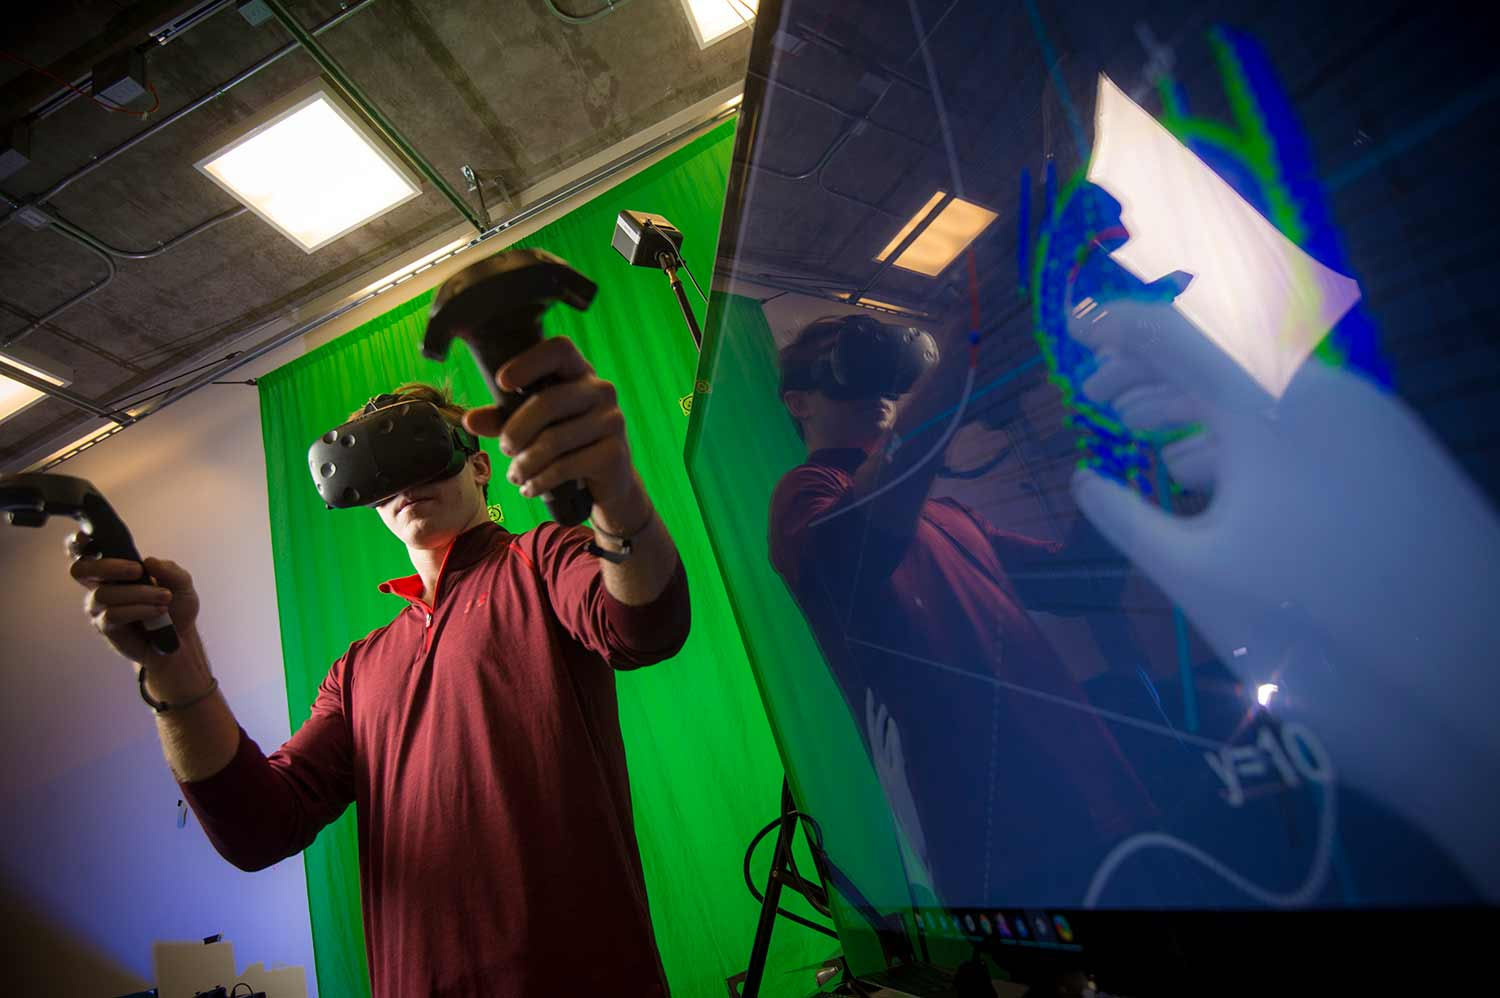 Steven McCloskey, co-founder of a new virtual reality startup, manipulates objects in an immersive environment.